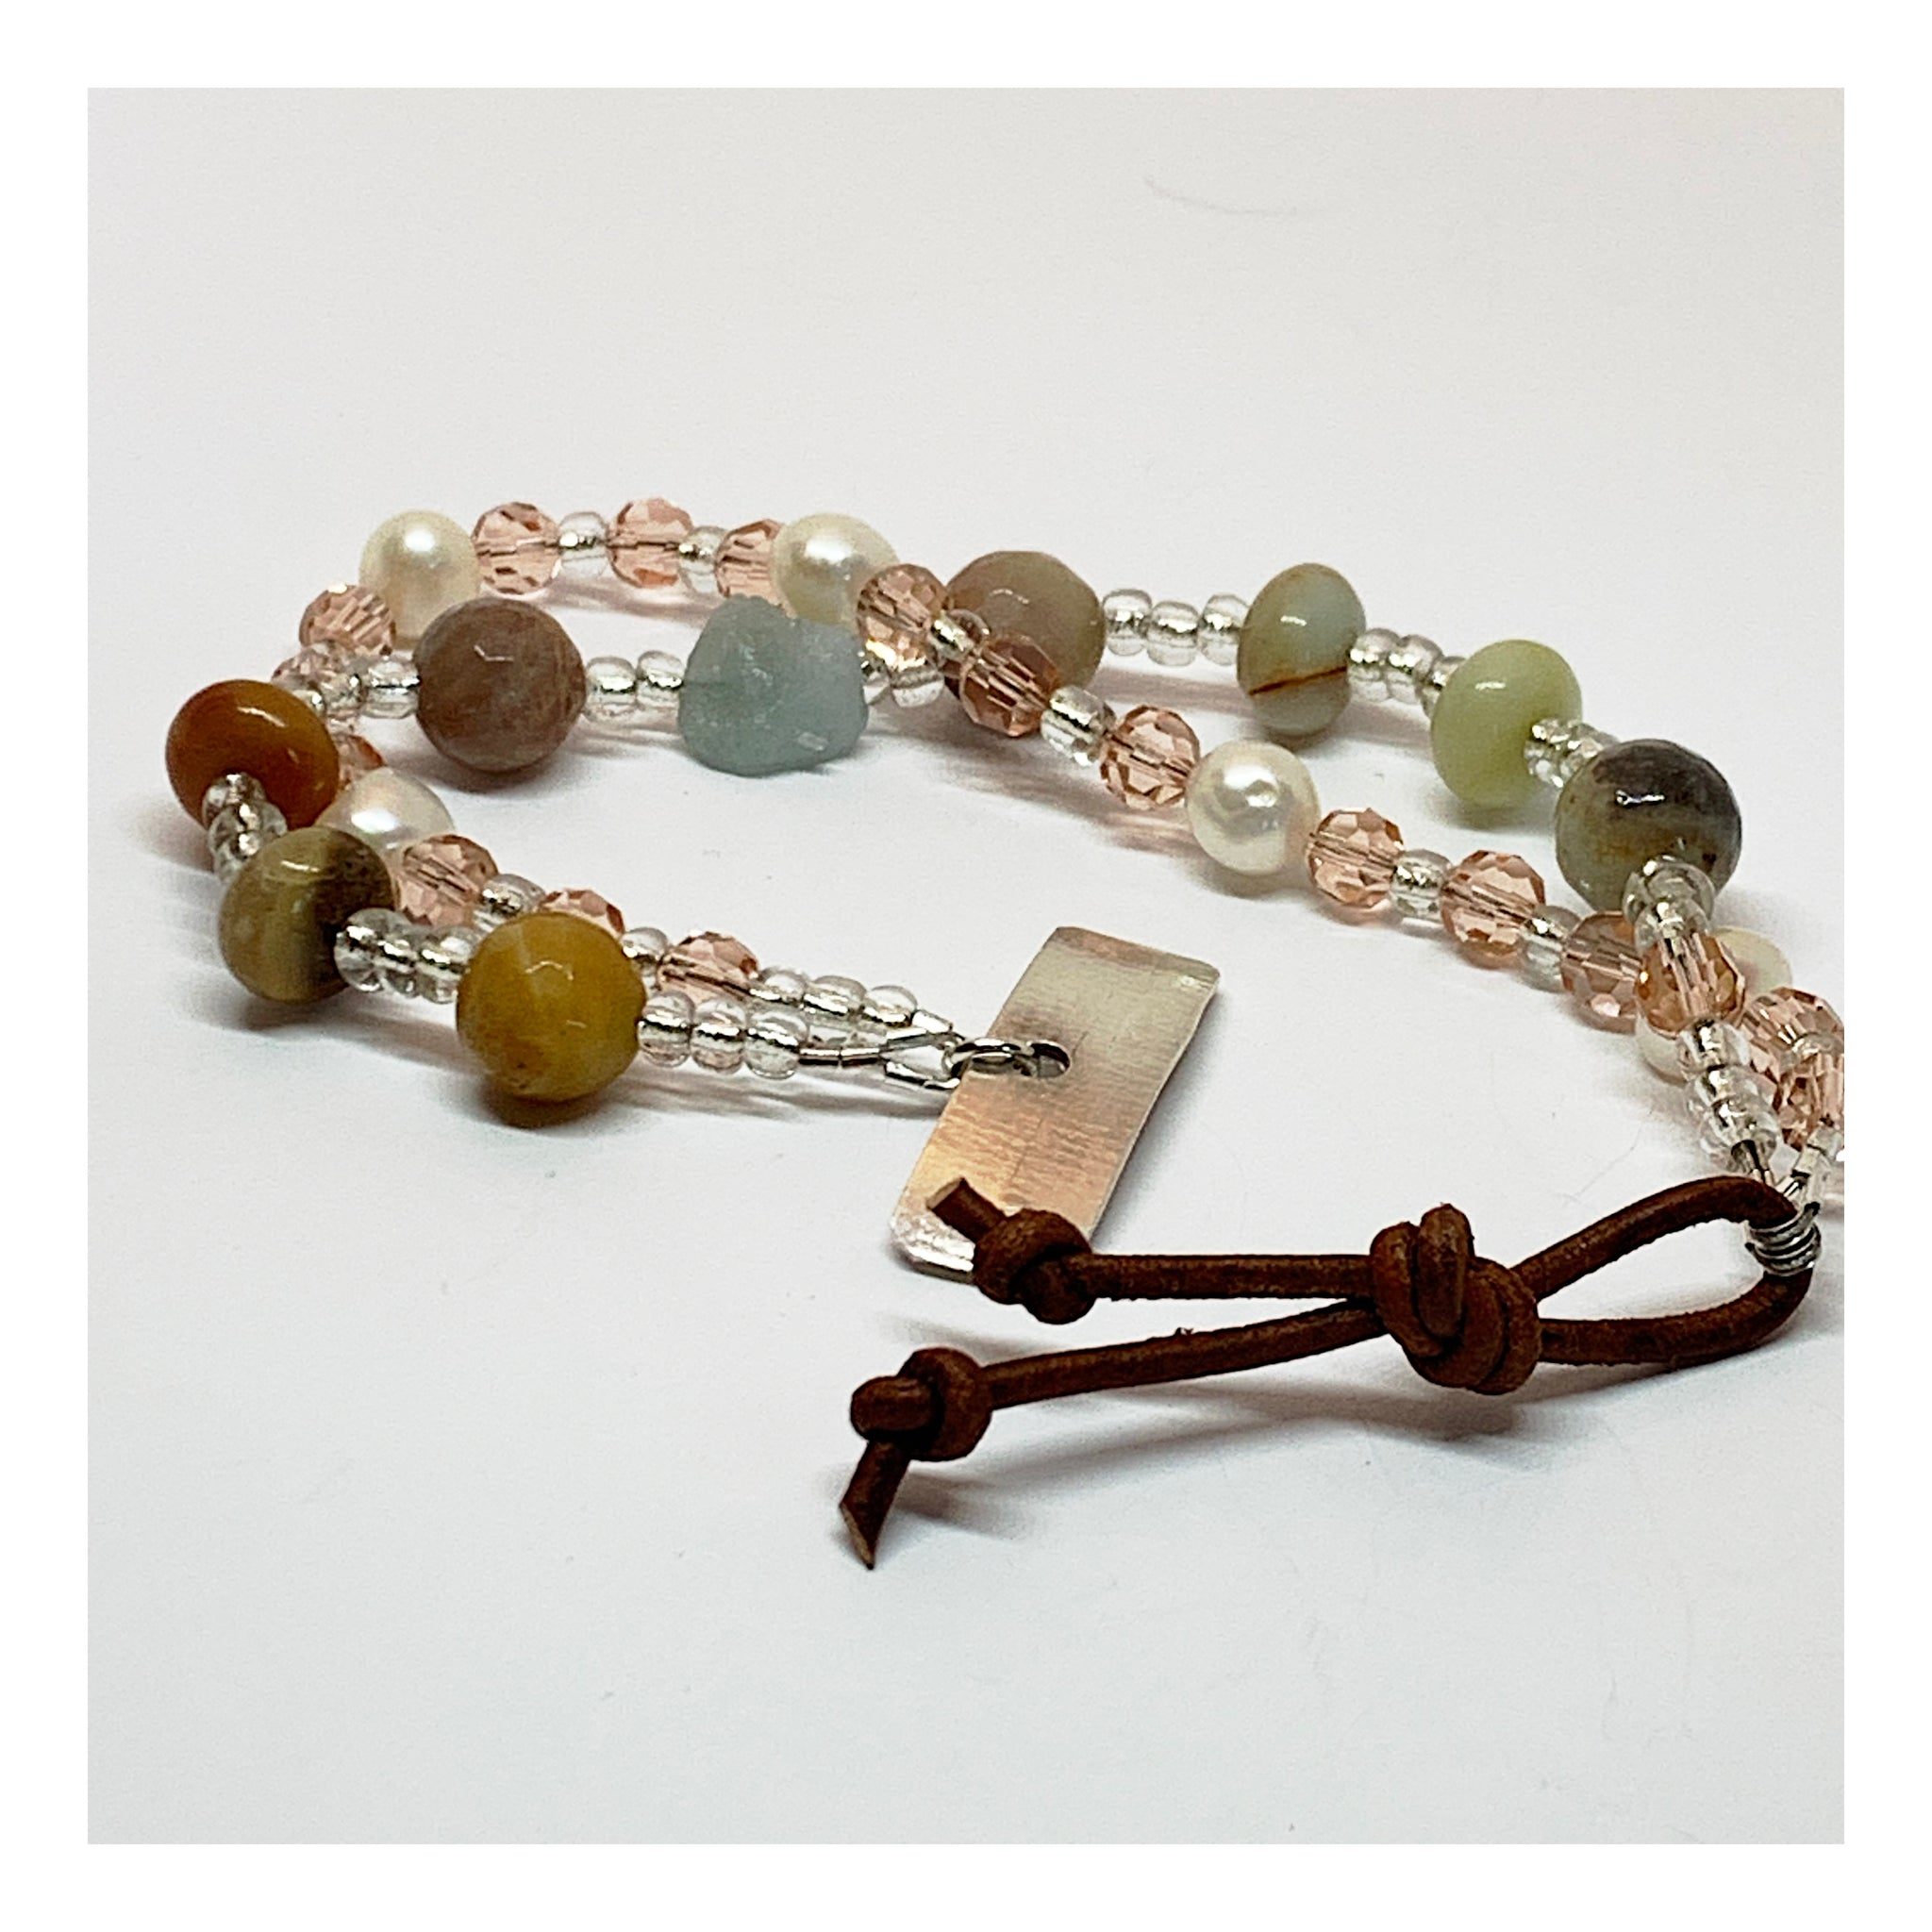 Semi Precious Gemstone Bracelet In Soft Pink and Brown Tones